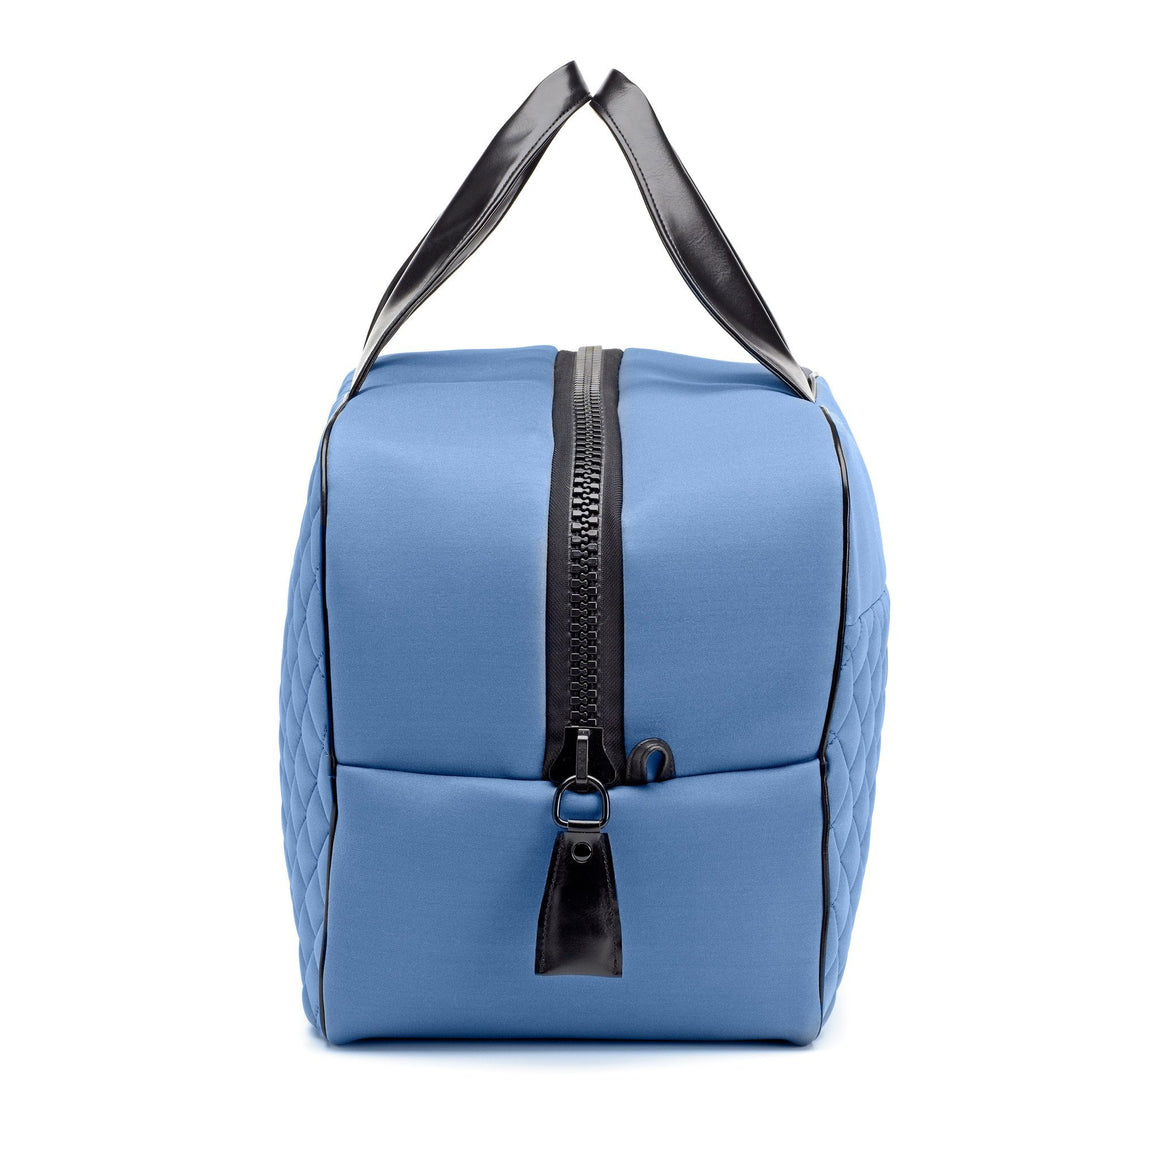 Rosenstaub Handbags NEOPREN WEEKENDER - DENIM BLUE